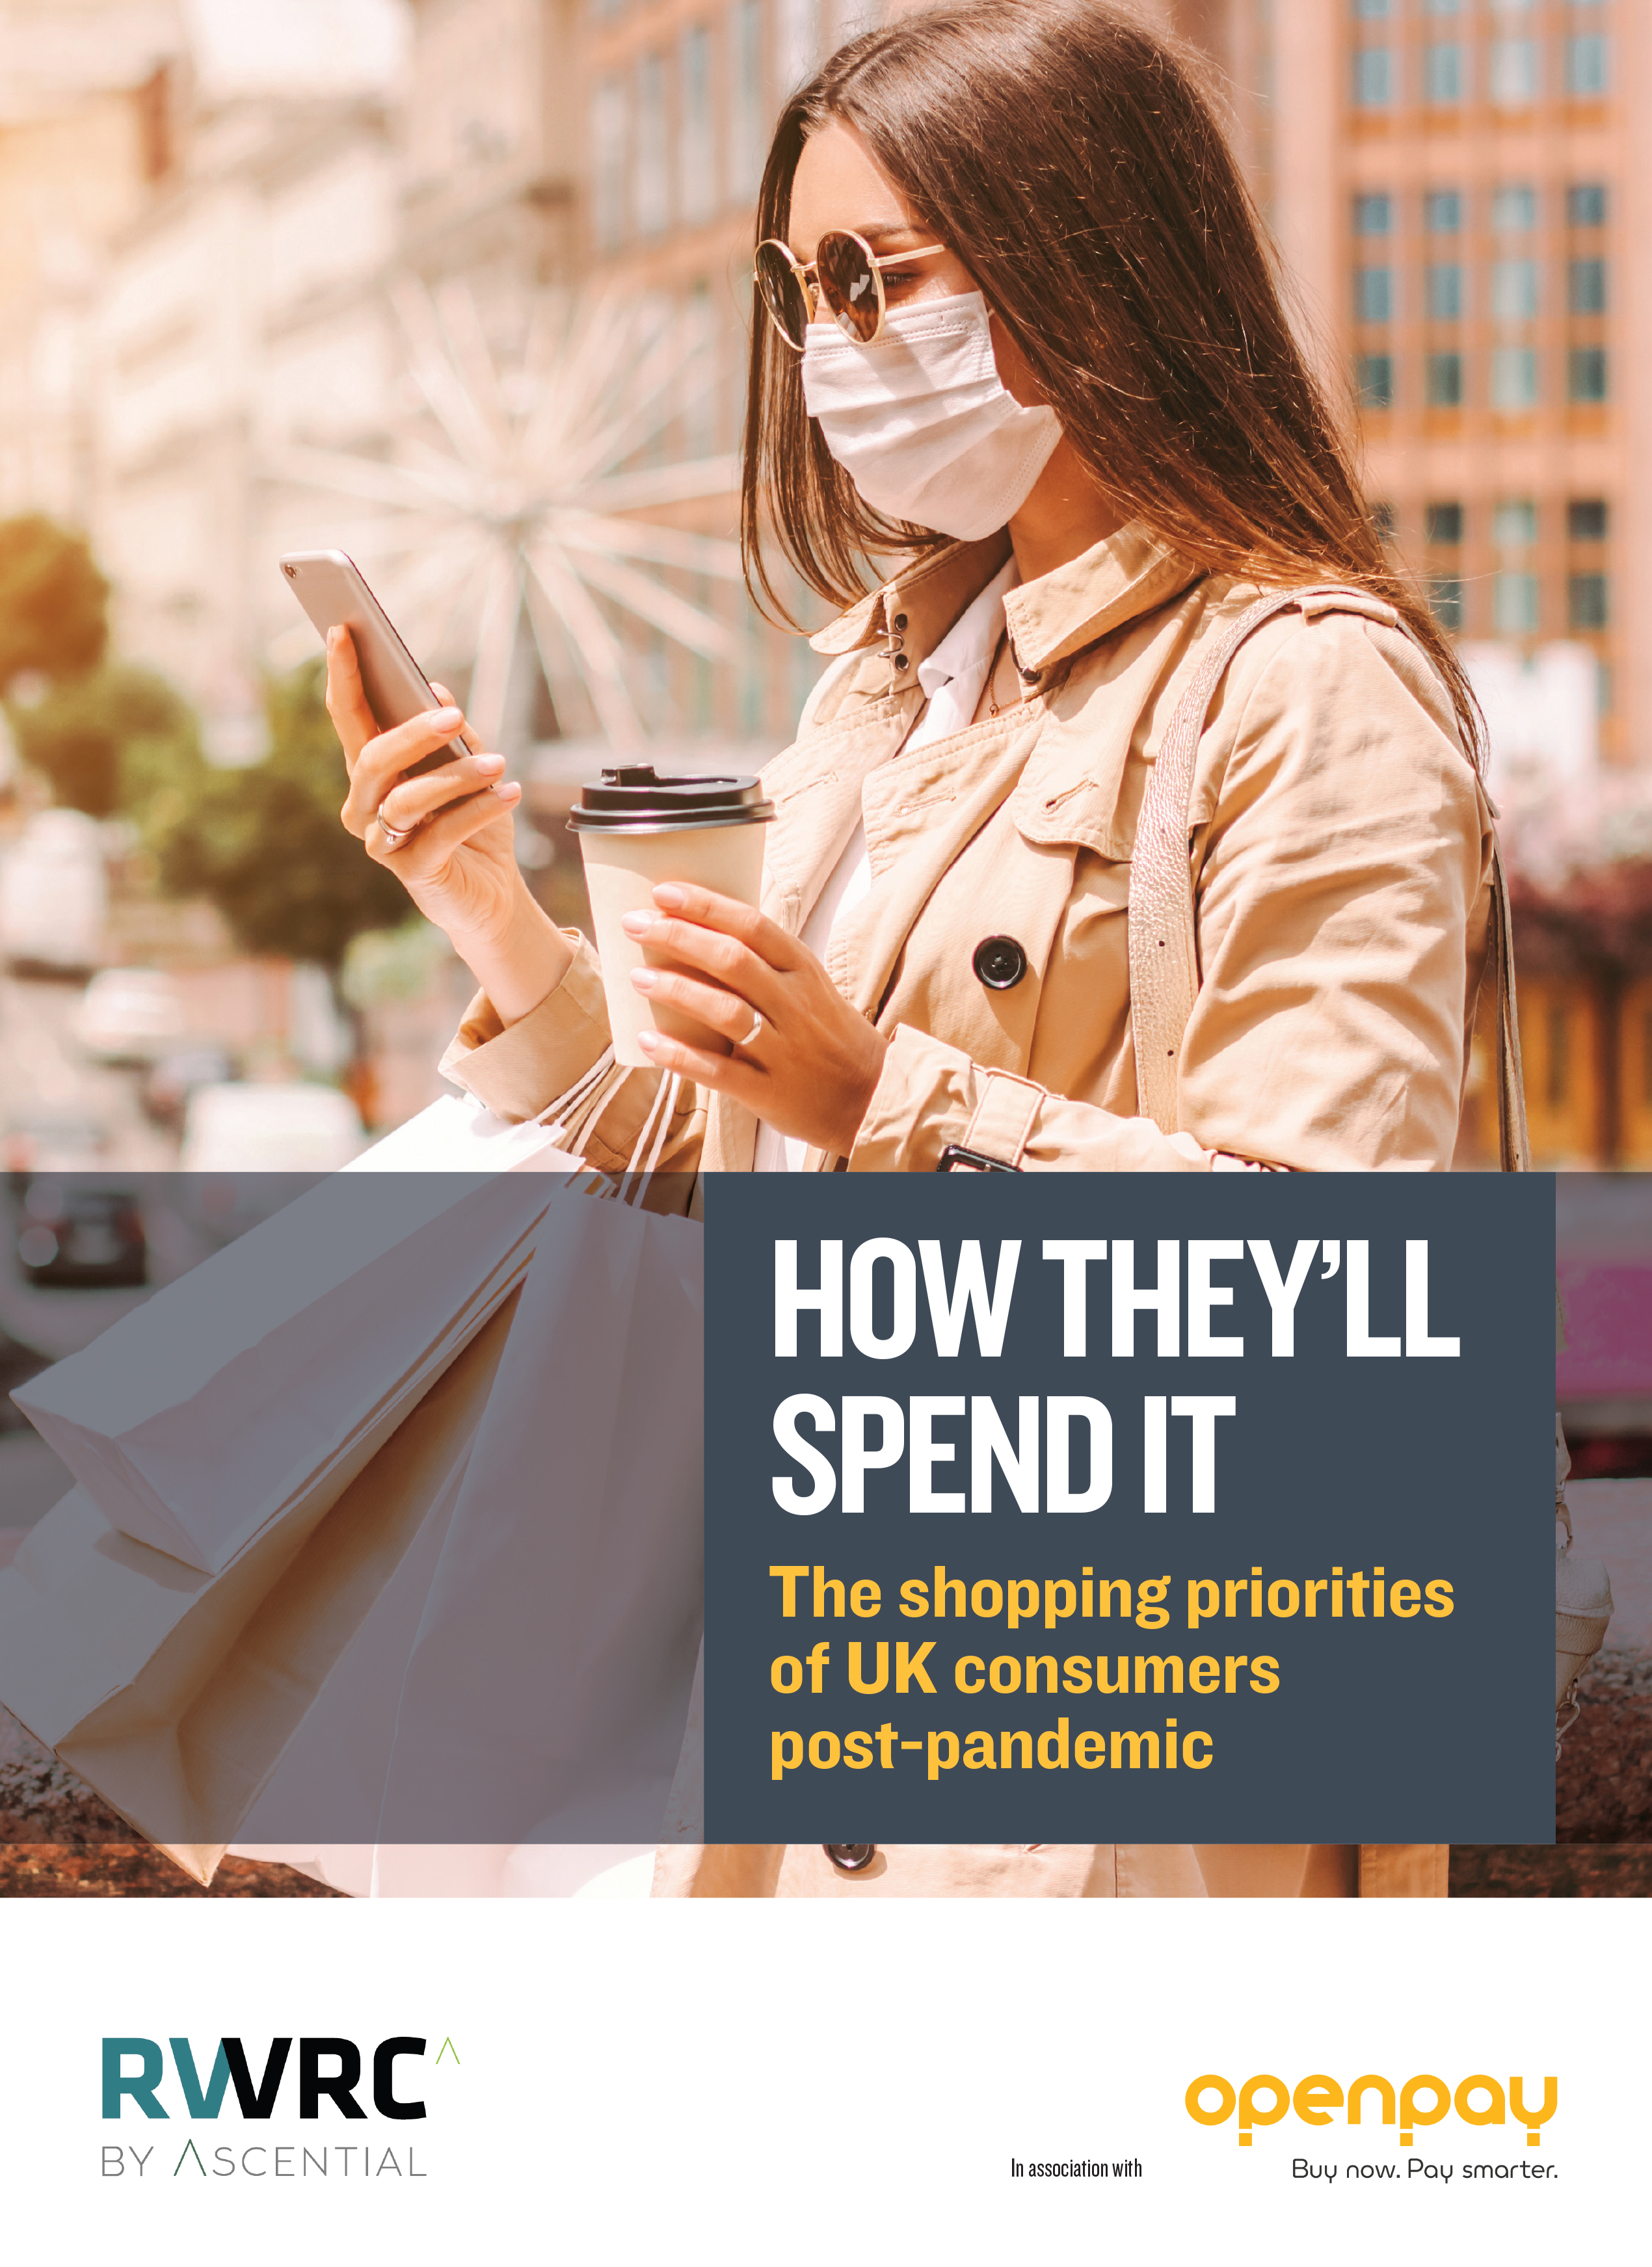 How They'll Spend It – The shopping priorities of UK consumers post-pandemic